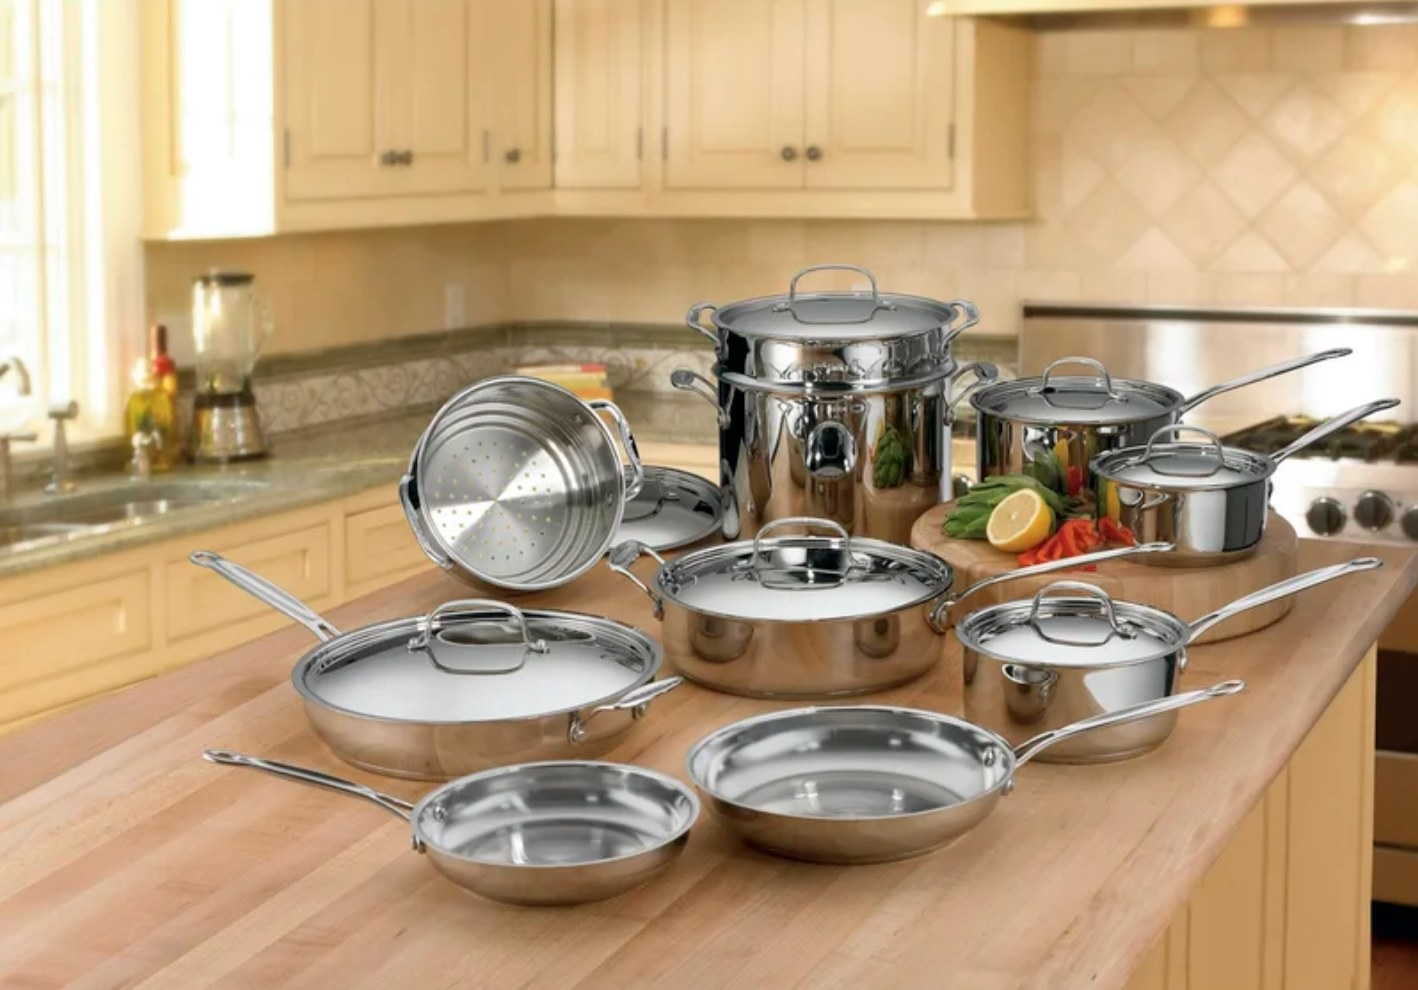 The Cuisinart cookware set in stainless steel